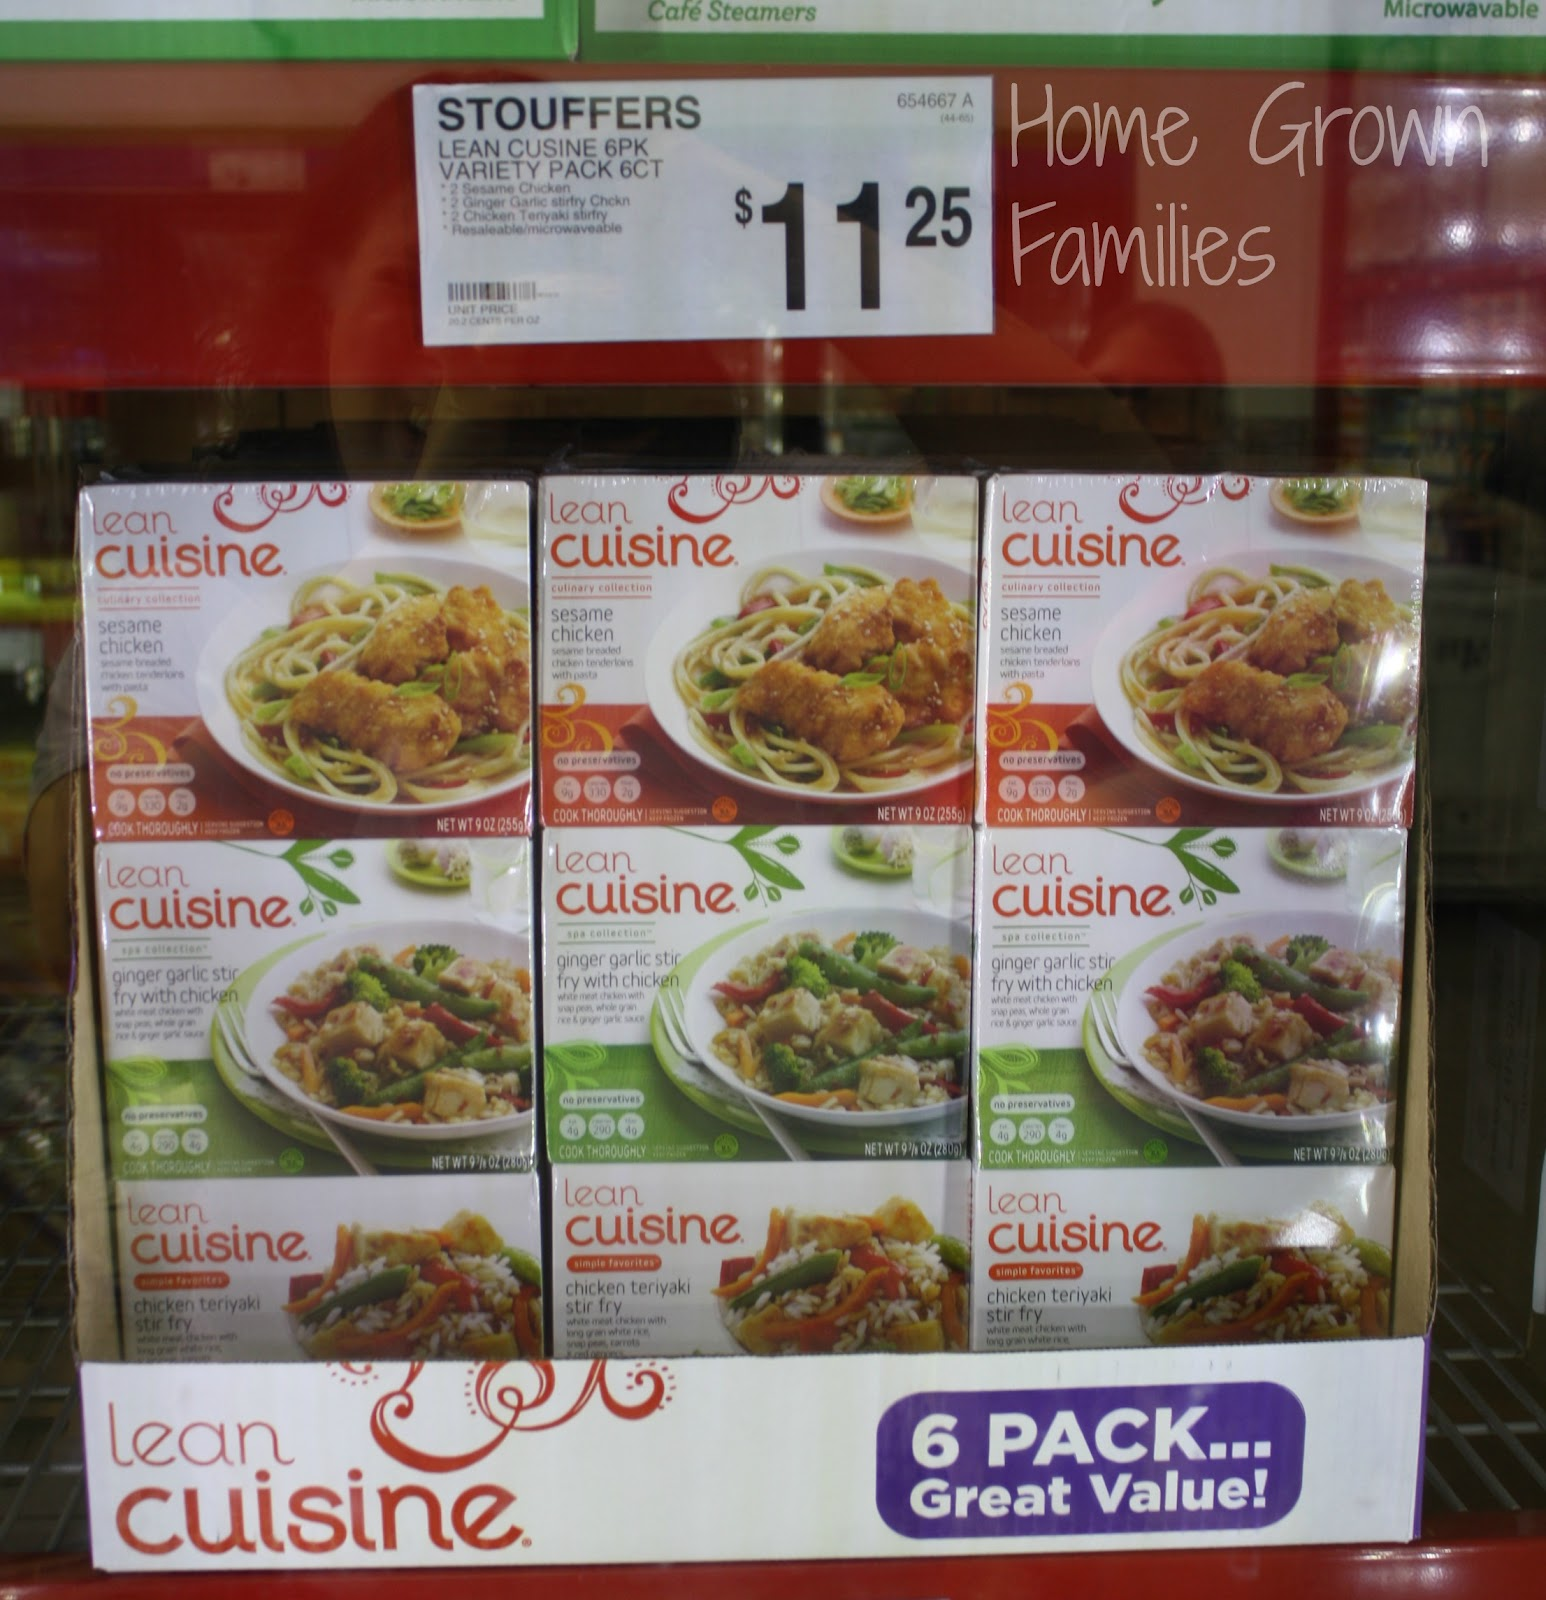 lean cuisine frozenfavorites asian flavor 6 pack cbias home grown families. Black Bedroom Furniture Sets. Home Design Ideas